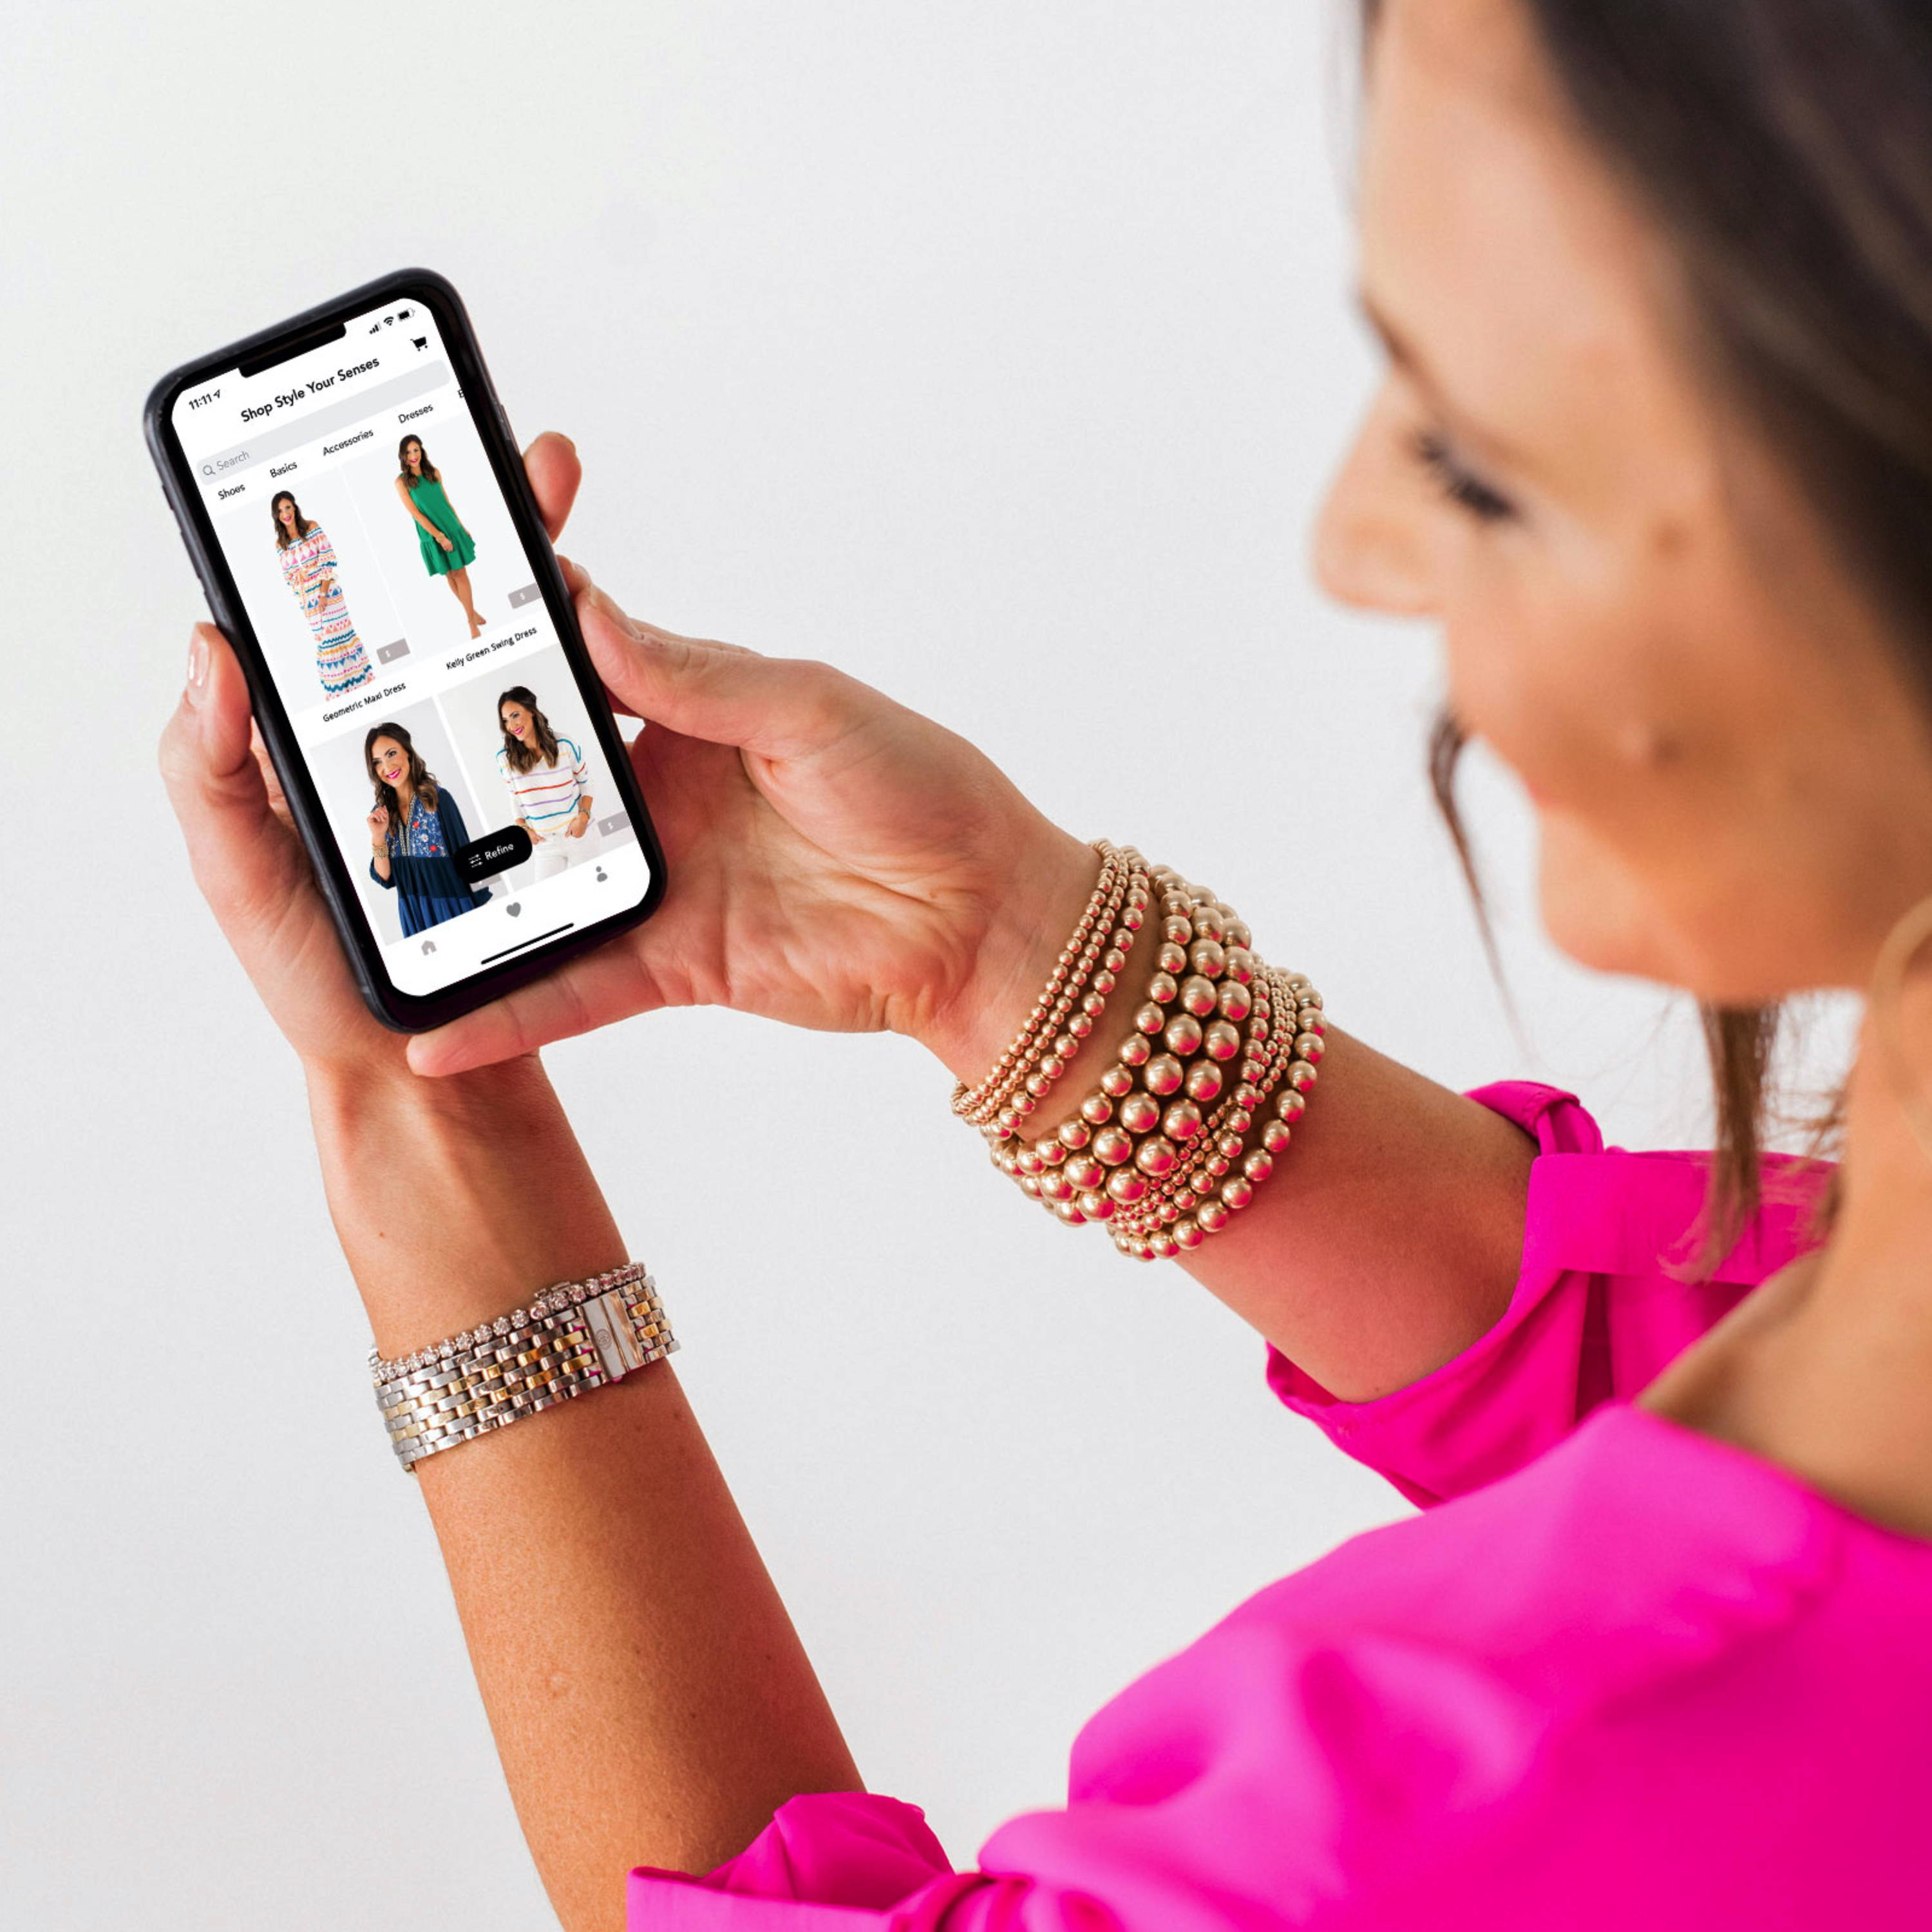 Shop-style-your-senses-by-mallory-fitzsimmons-mobile-app